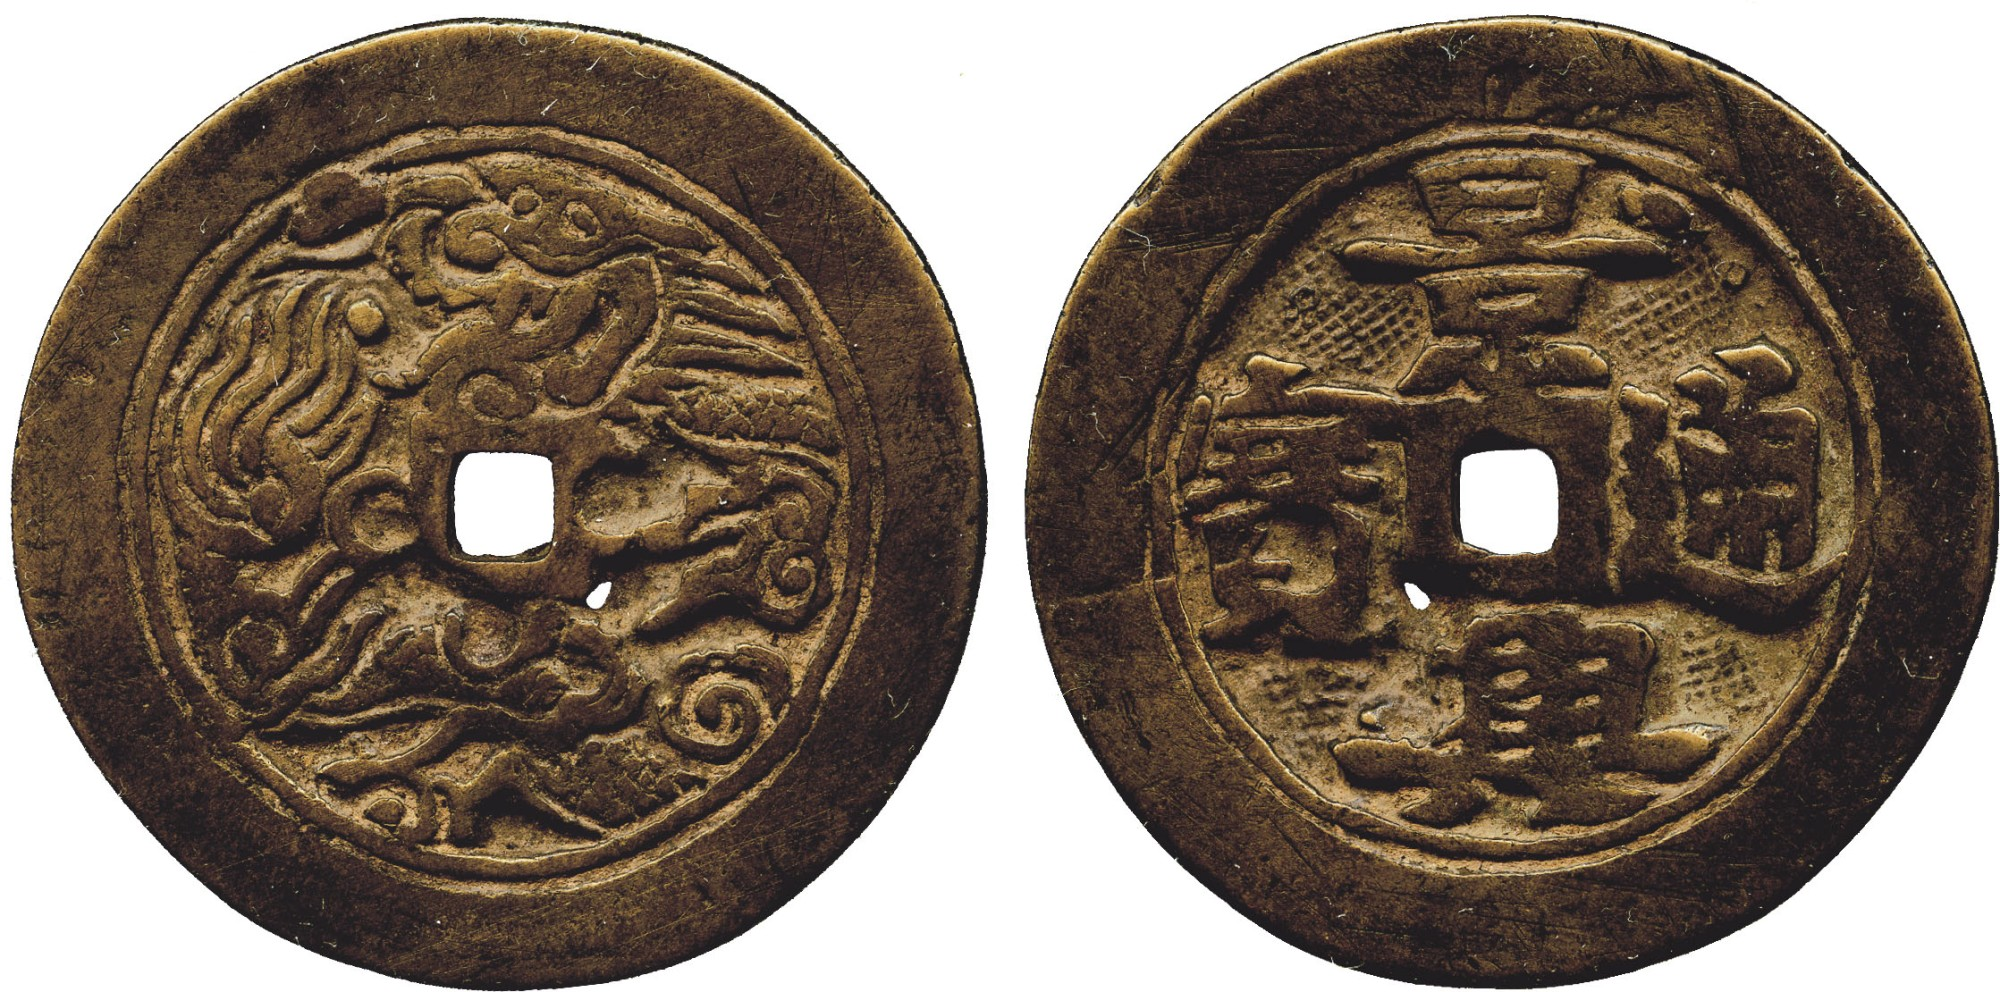 Lot 802 - COINS. VIETNAM. Canh Hung (1740-87). Bronze Large Cash, Obv ,Rev dragon and clouds, 46mm (Sch 73).